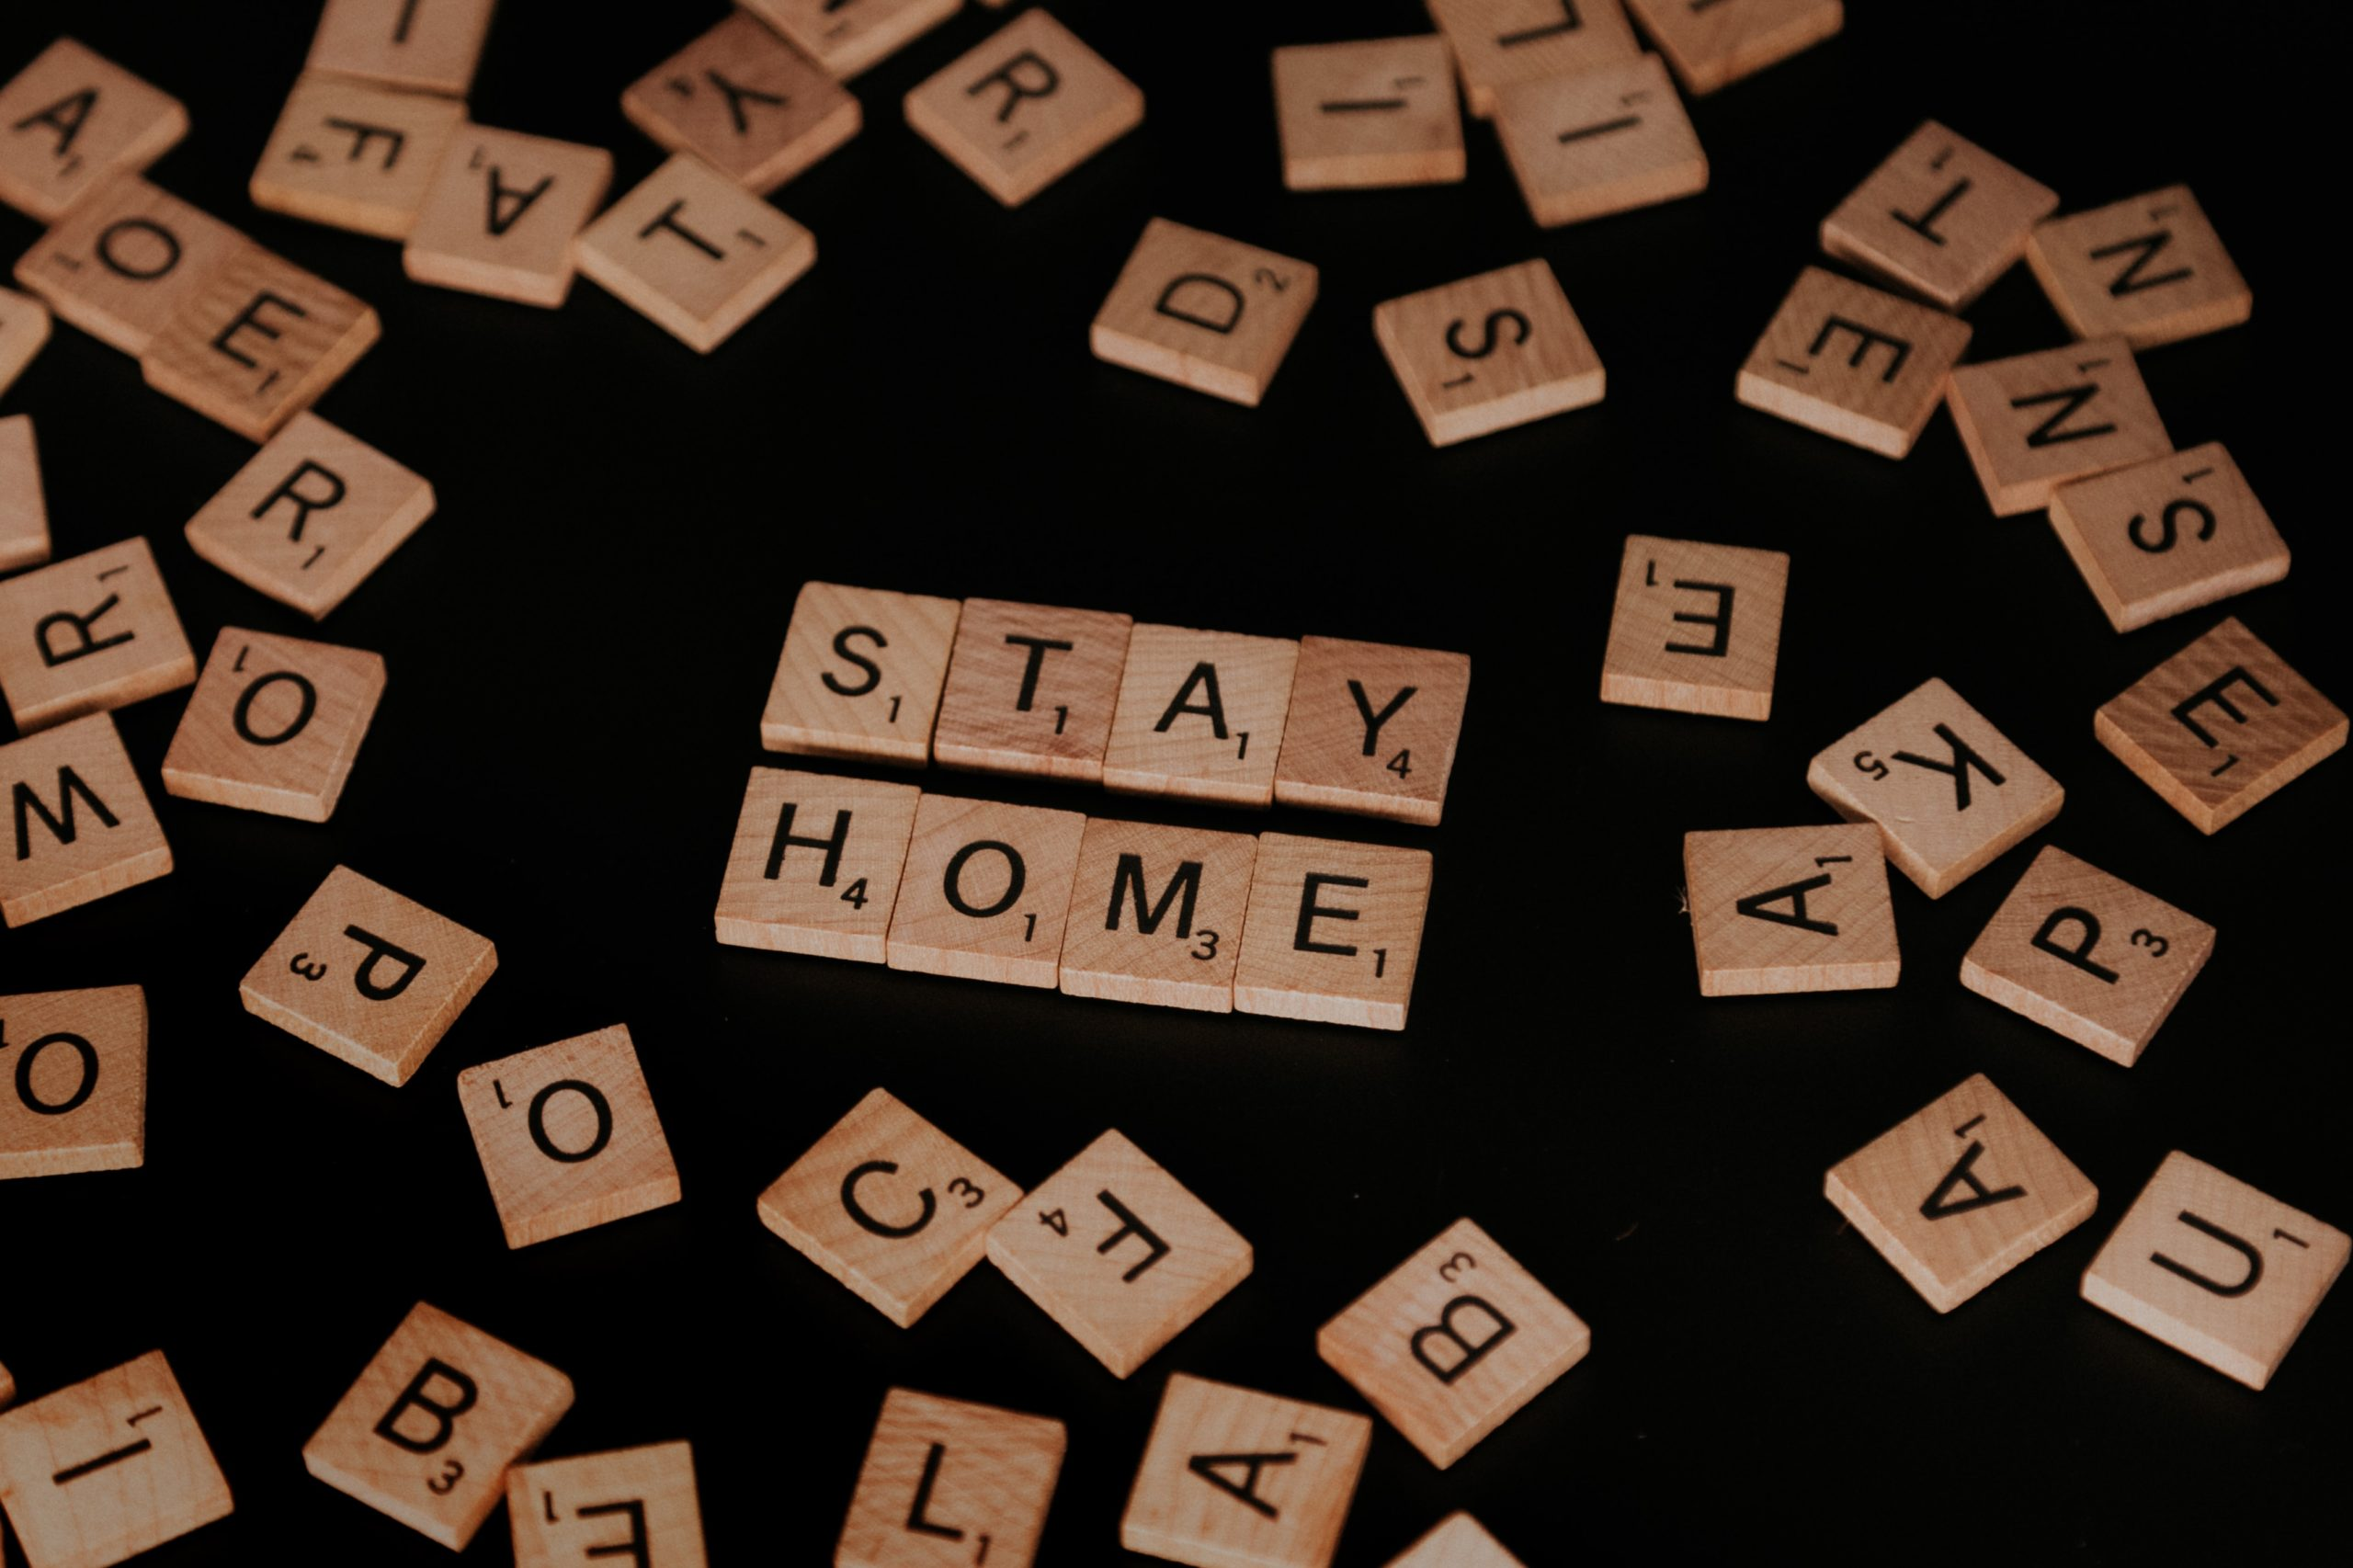 Stay home scrabble words